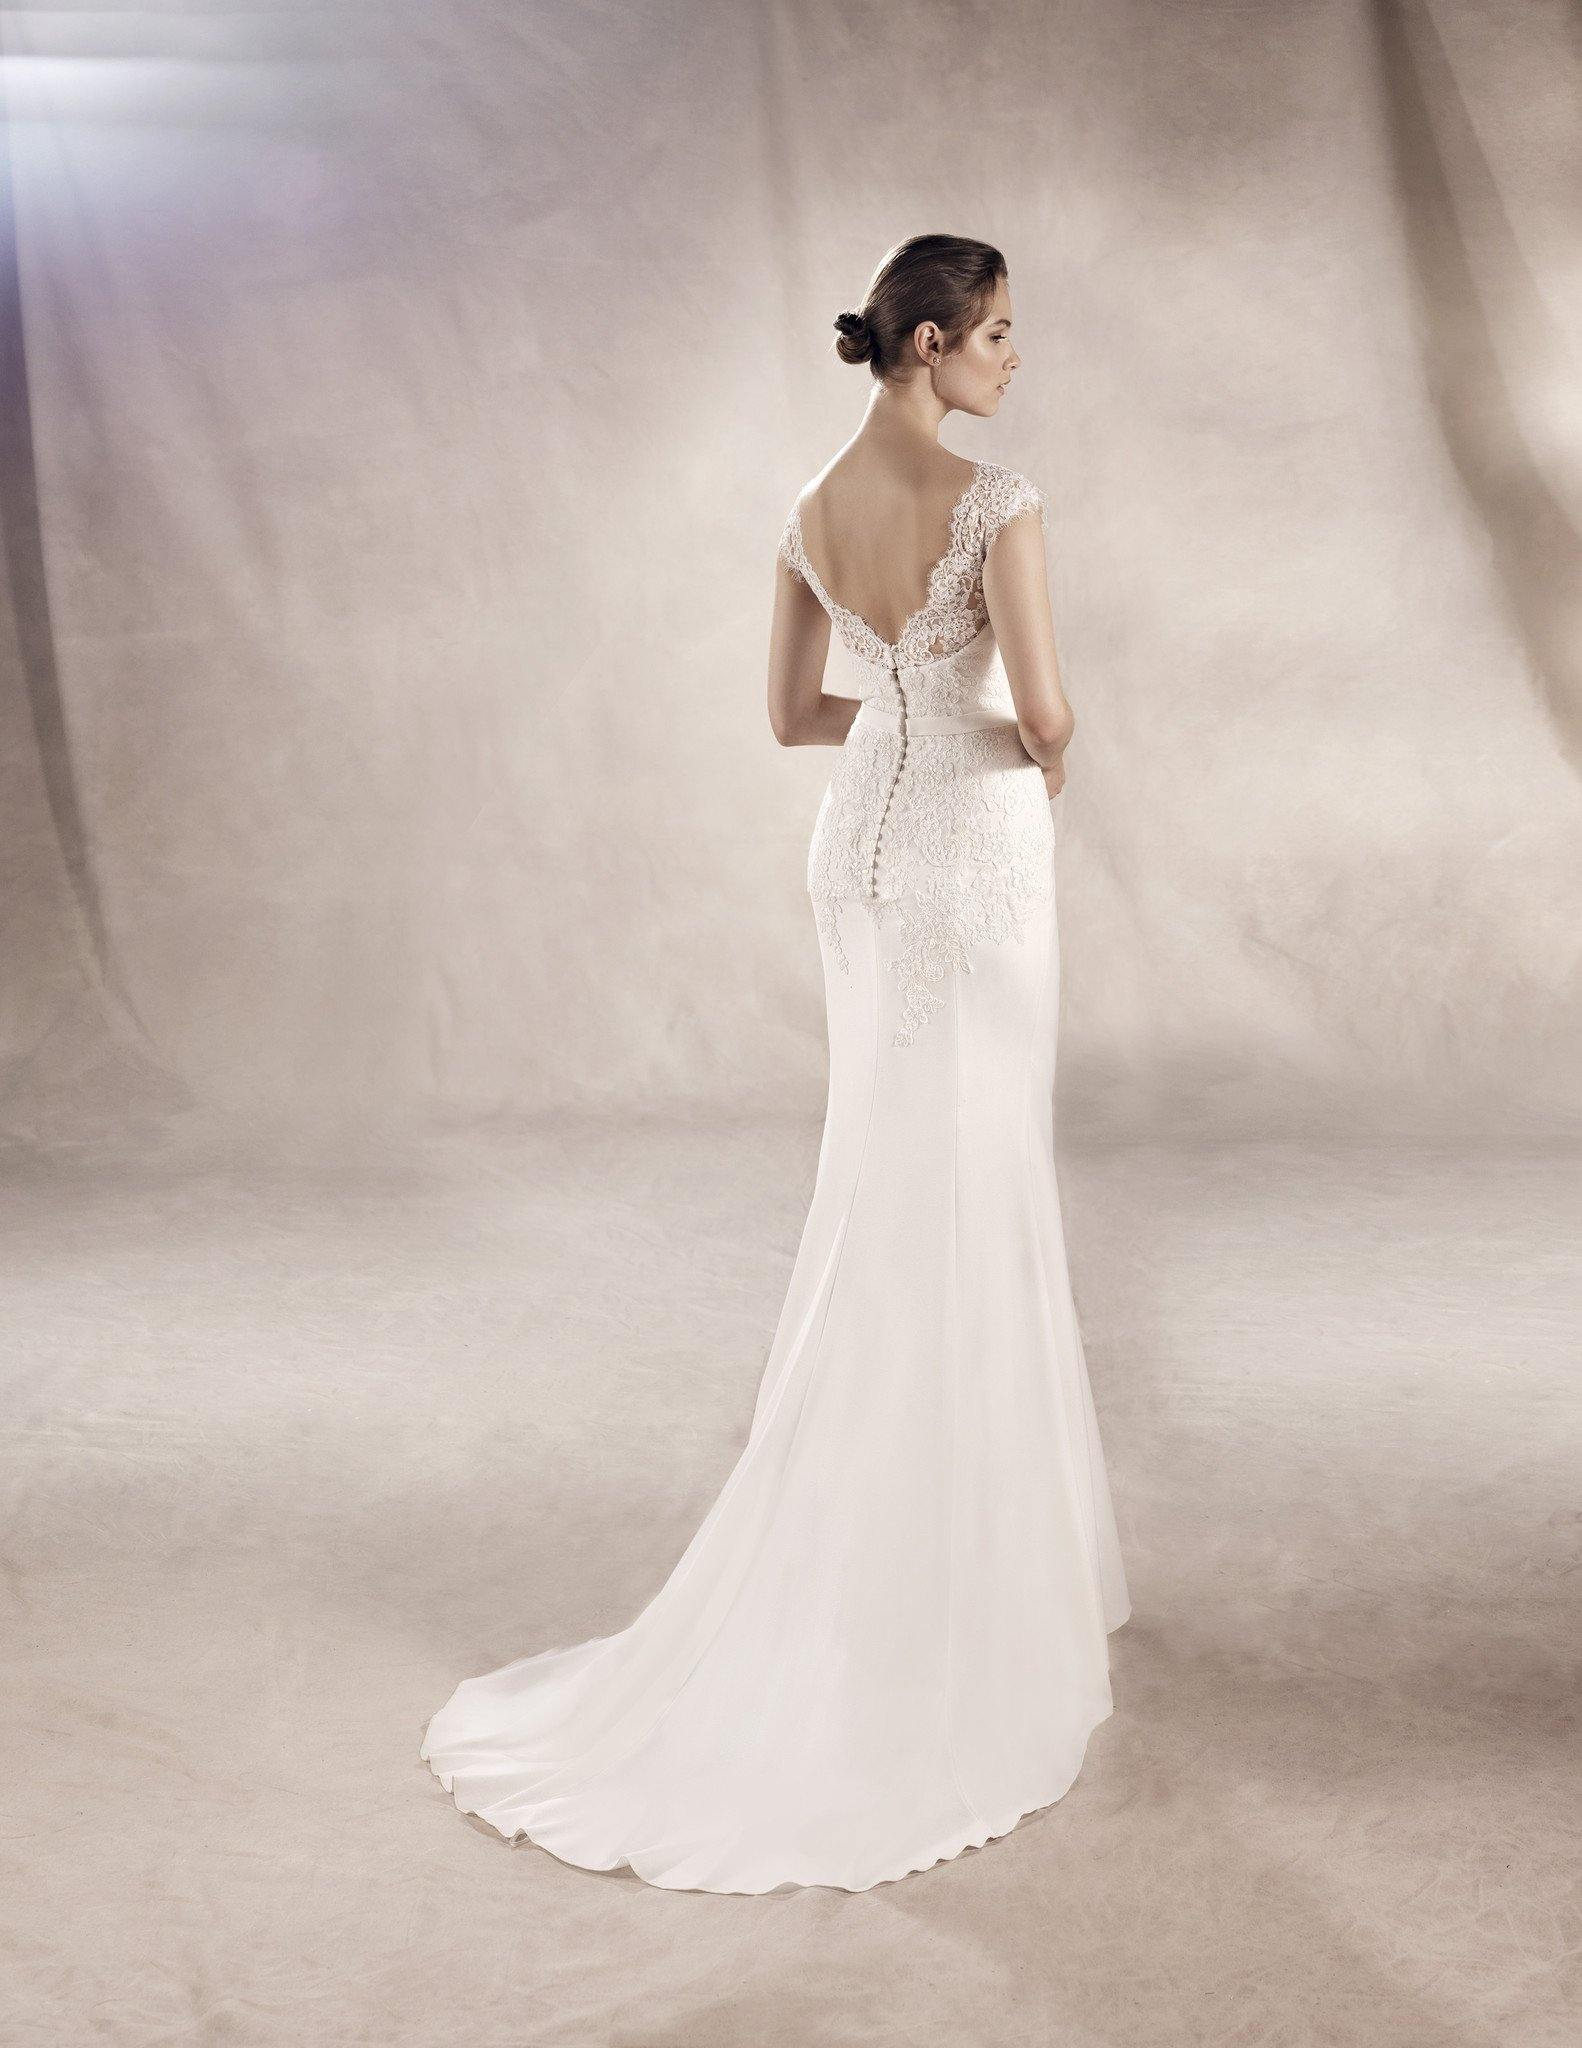 Yuriana Sample Sale Size 12 - Elliott Chambers    - Bridal -  Debs Dresses -  Communion dresses